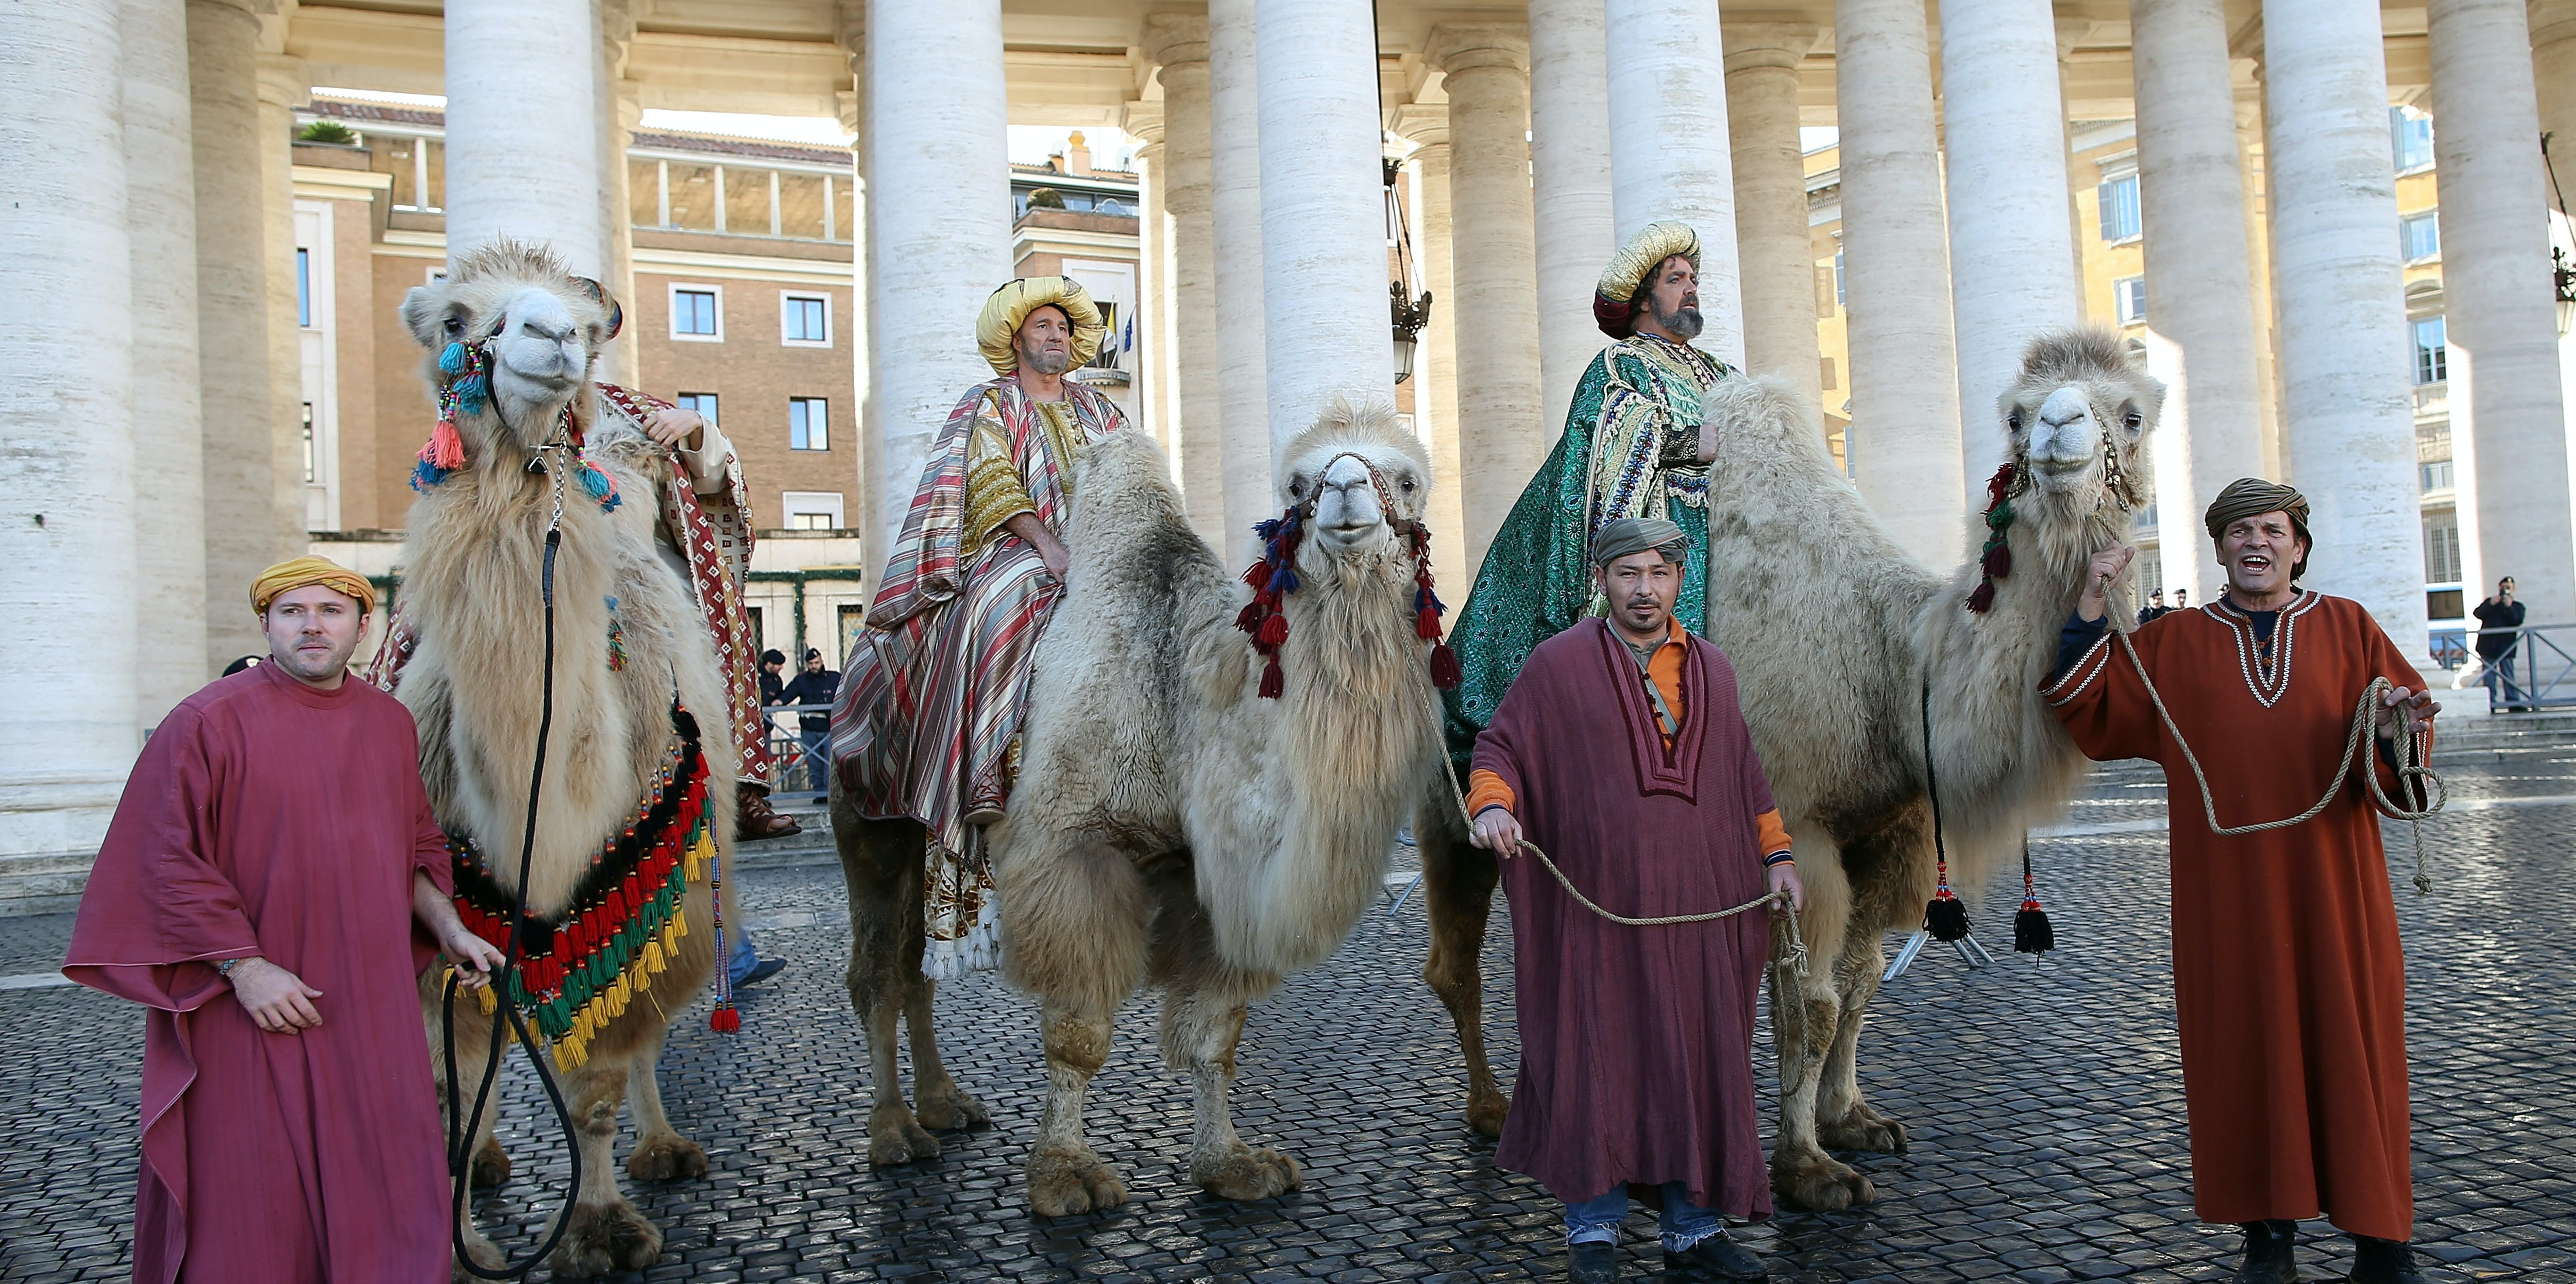 Faithful dressed as the three Magi (the Three Wise Men) gather in St Peter's Square during the Feast of the Epiphany attend the Pope Francis' Angelus blessing on January 6, 2016 in Vatican City, Vatican. In his homily at Mass celebrating the solemnity of the Epiphany, Pope Francis said the Church is called to be a missionary Church and announcing Christ is not a profession and nor is it about proselytism.